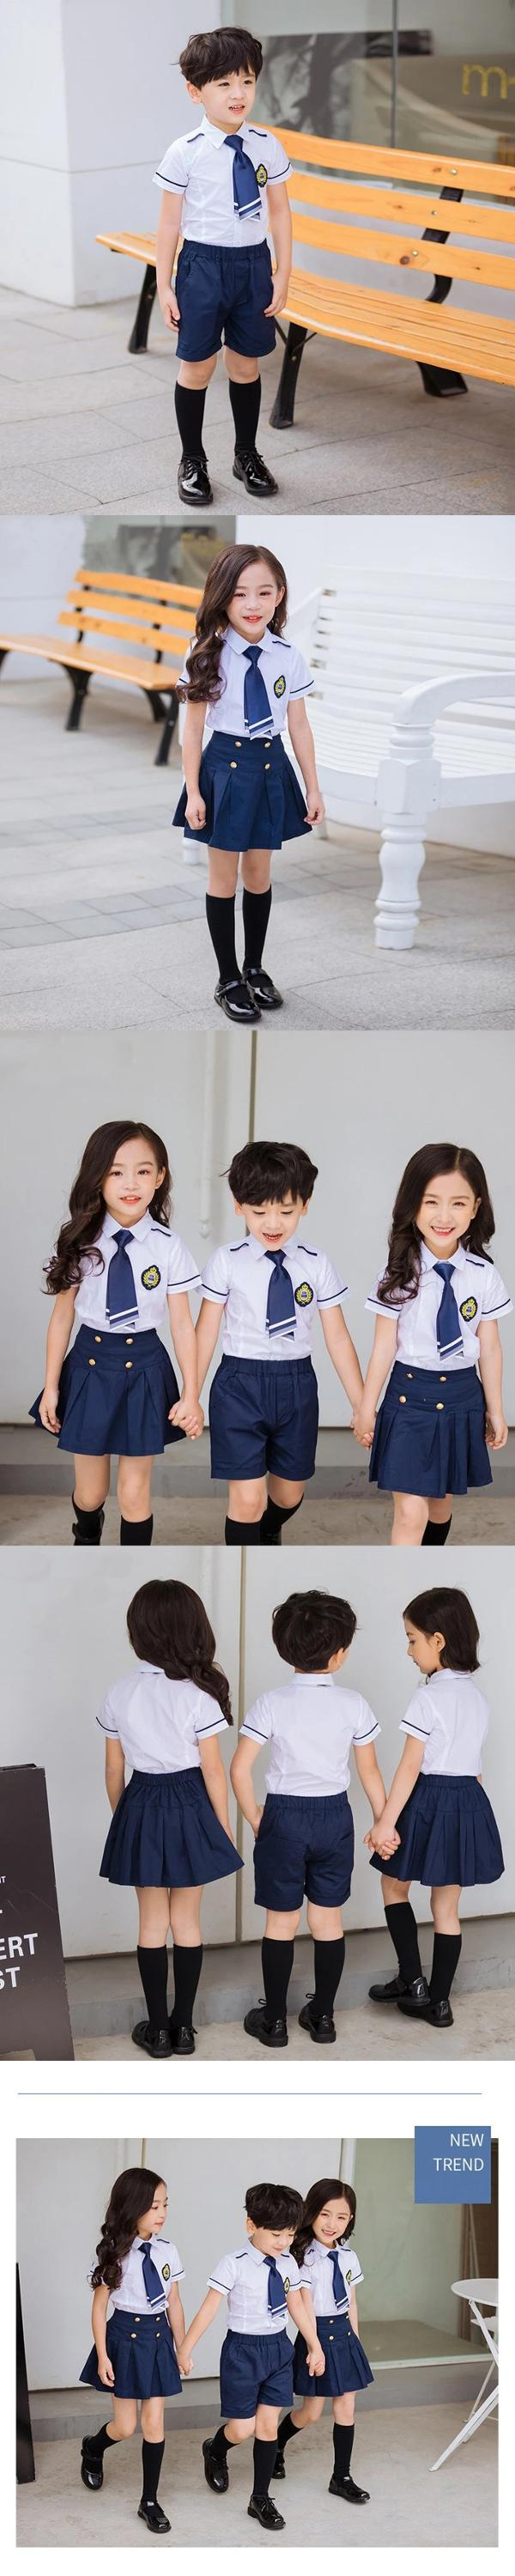 School Uniforms.jpg